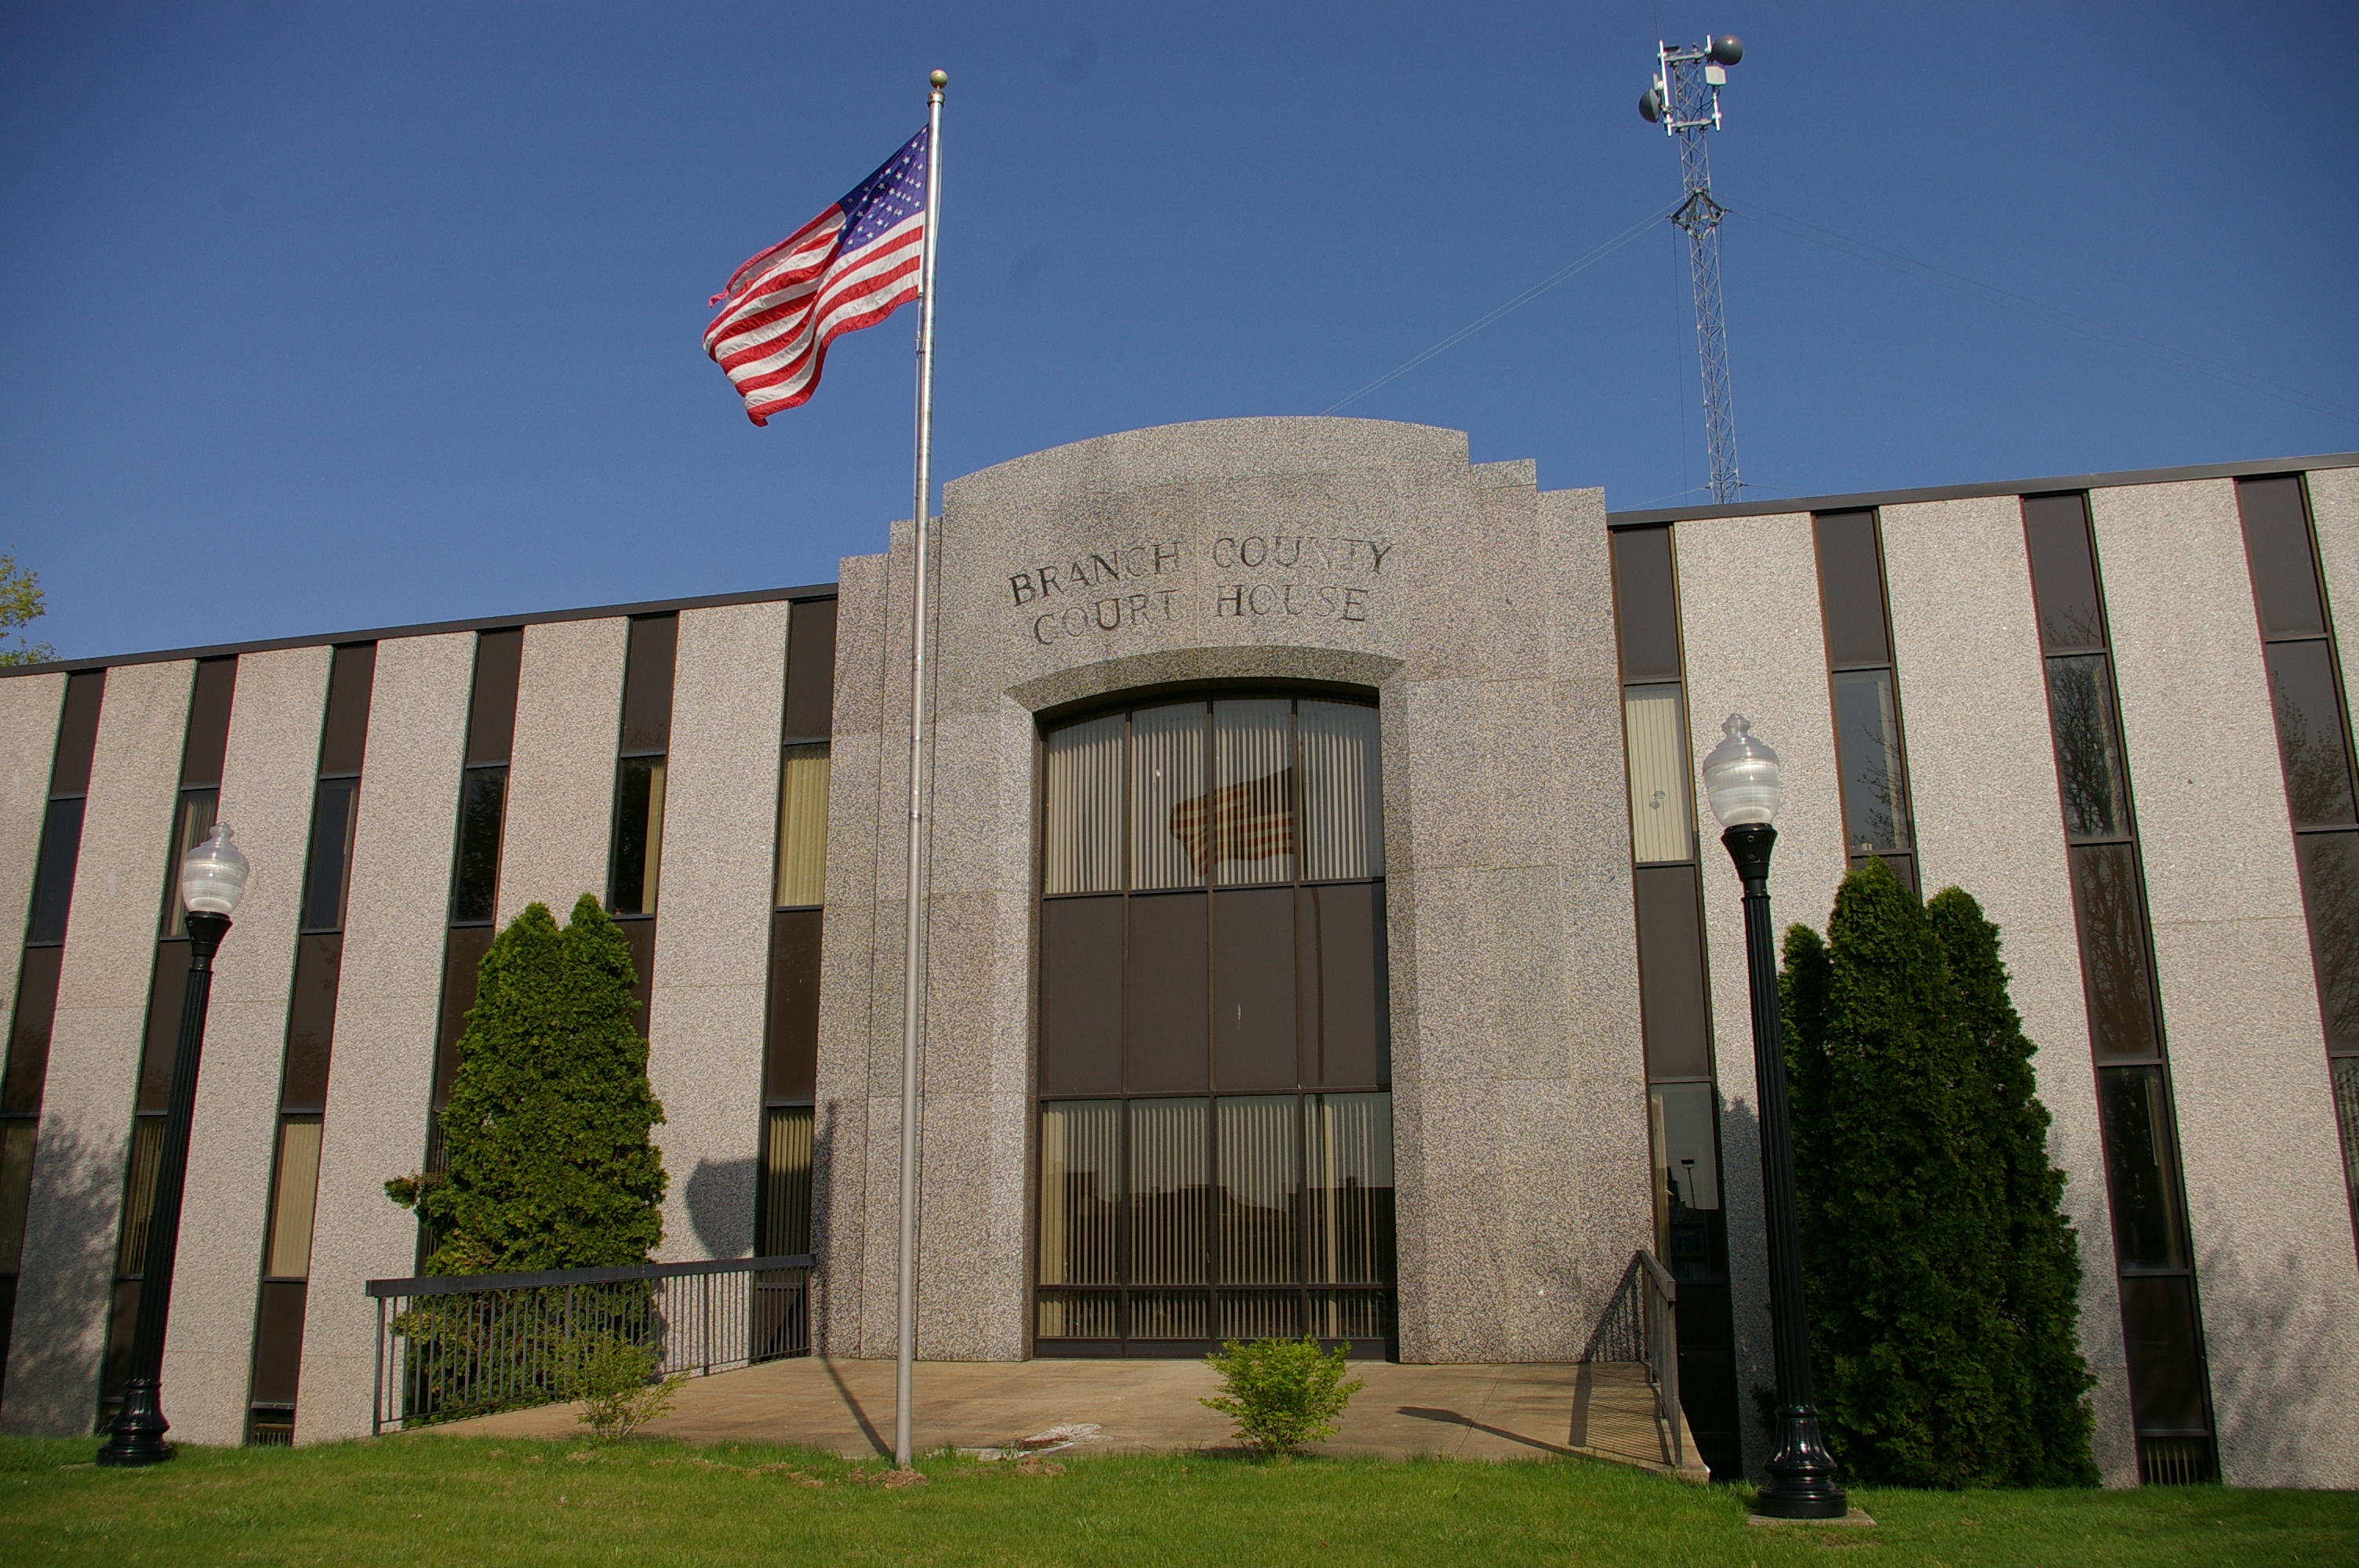 Branch County Us Courthouses